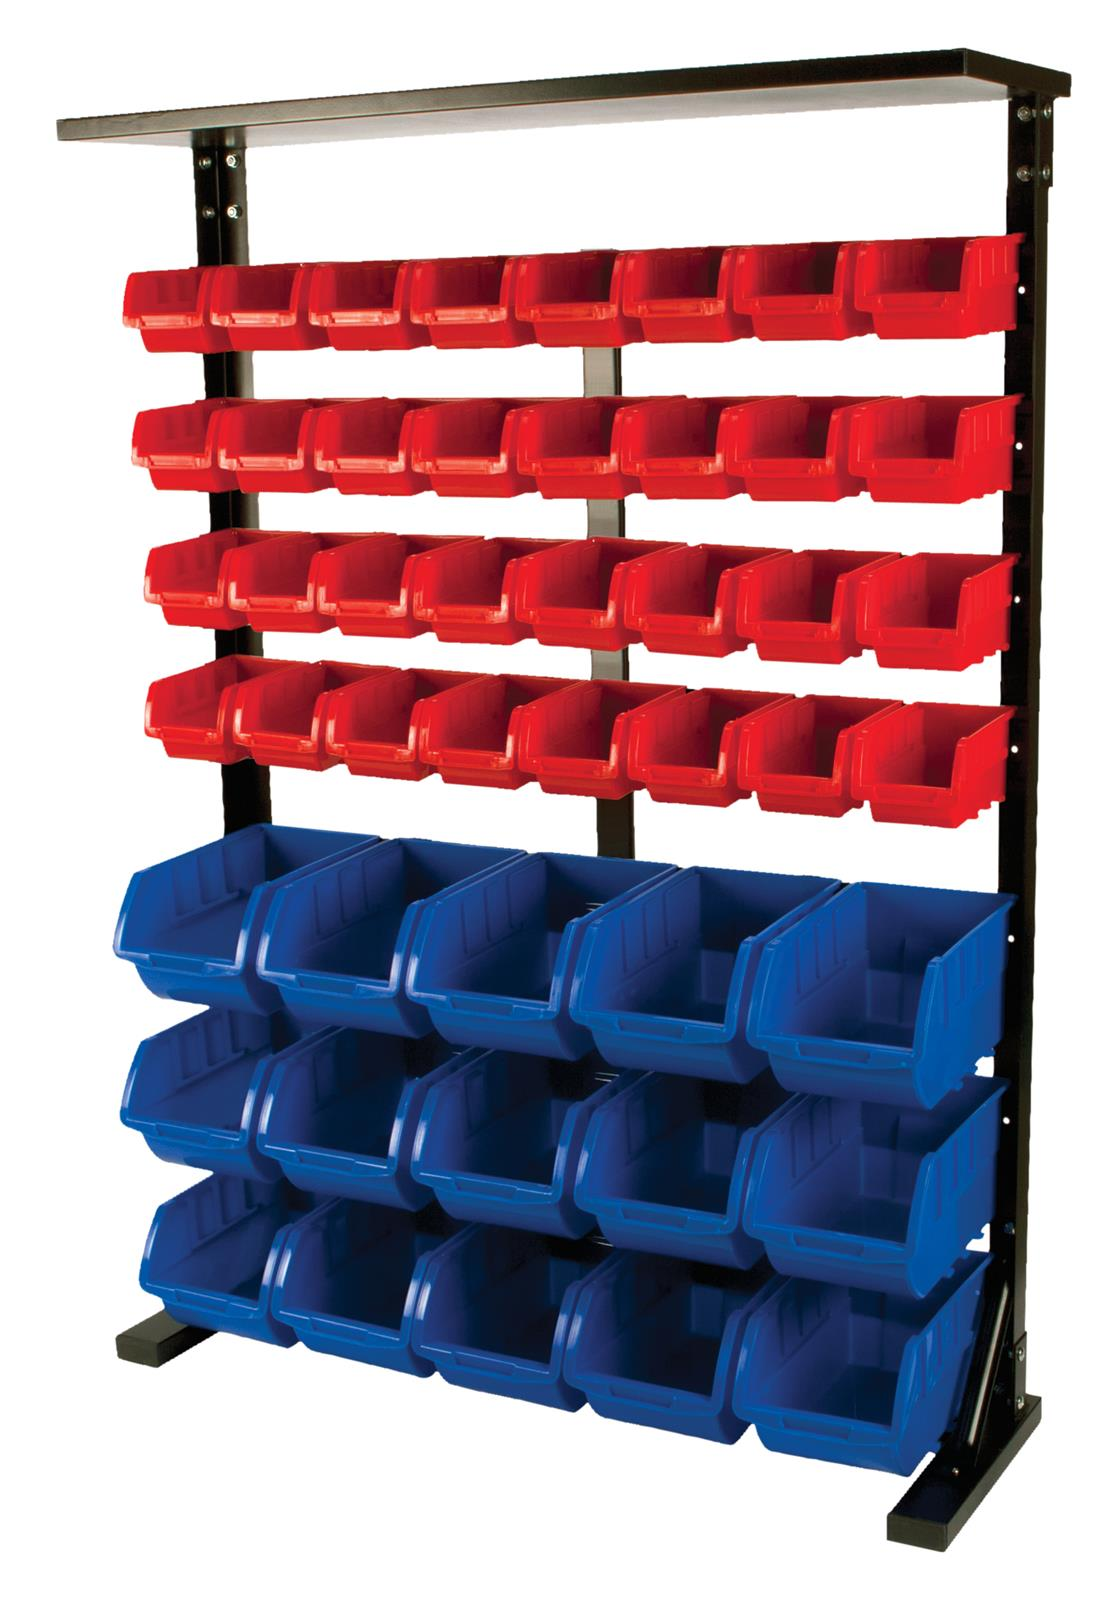 Storage Racks Performance Tool Bulk Bin Storage Racks W5193